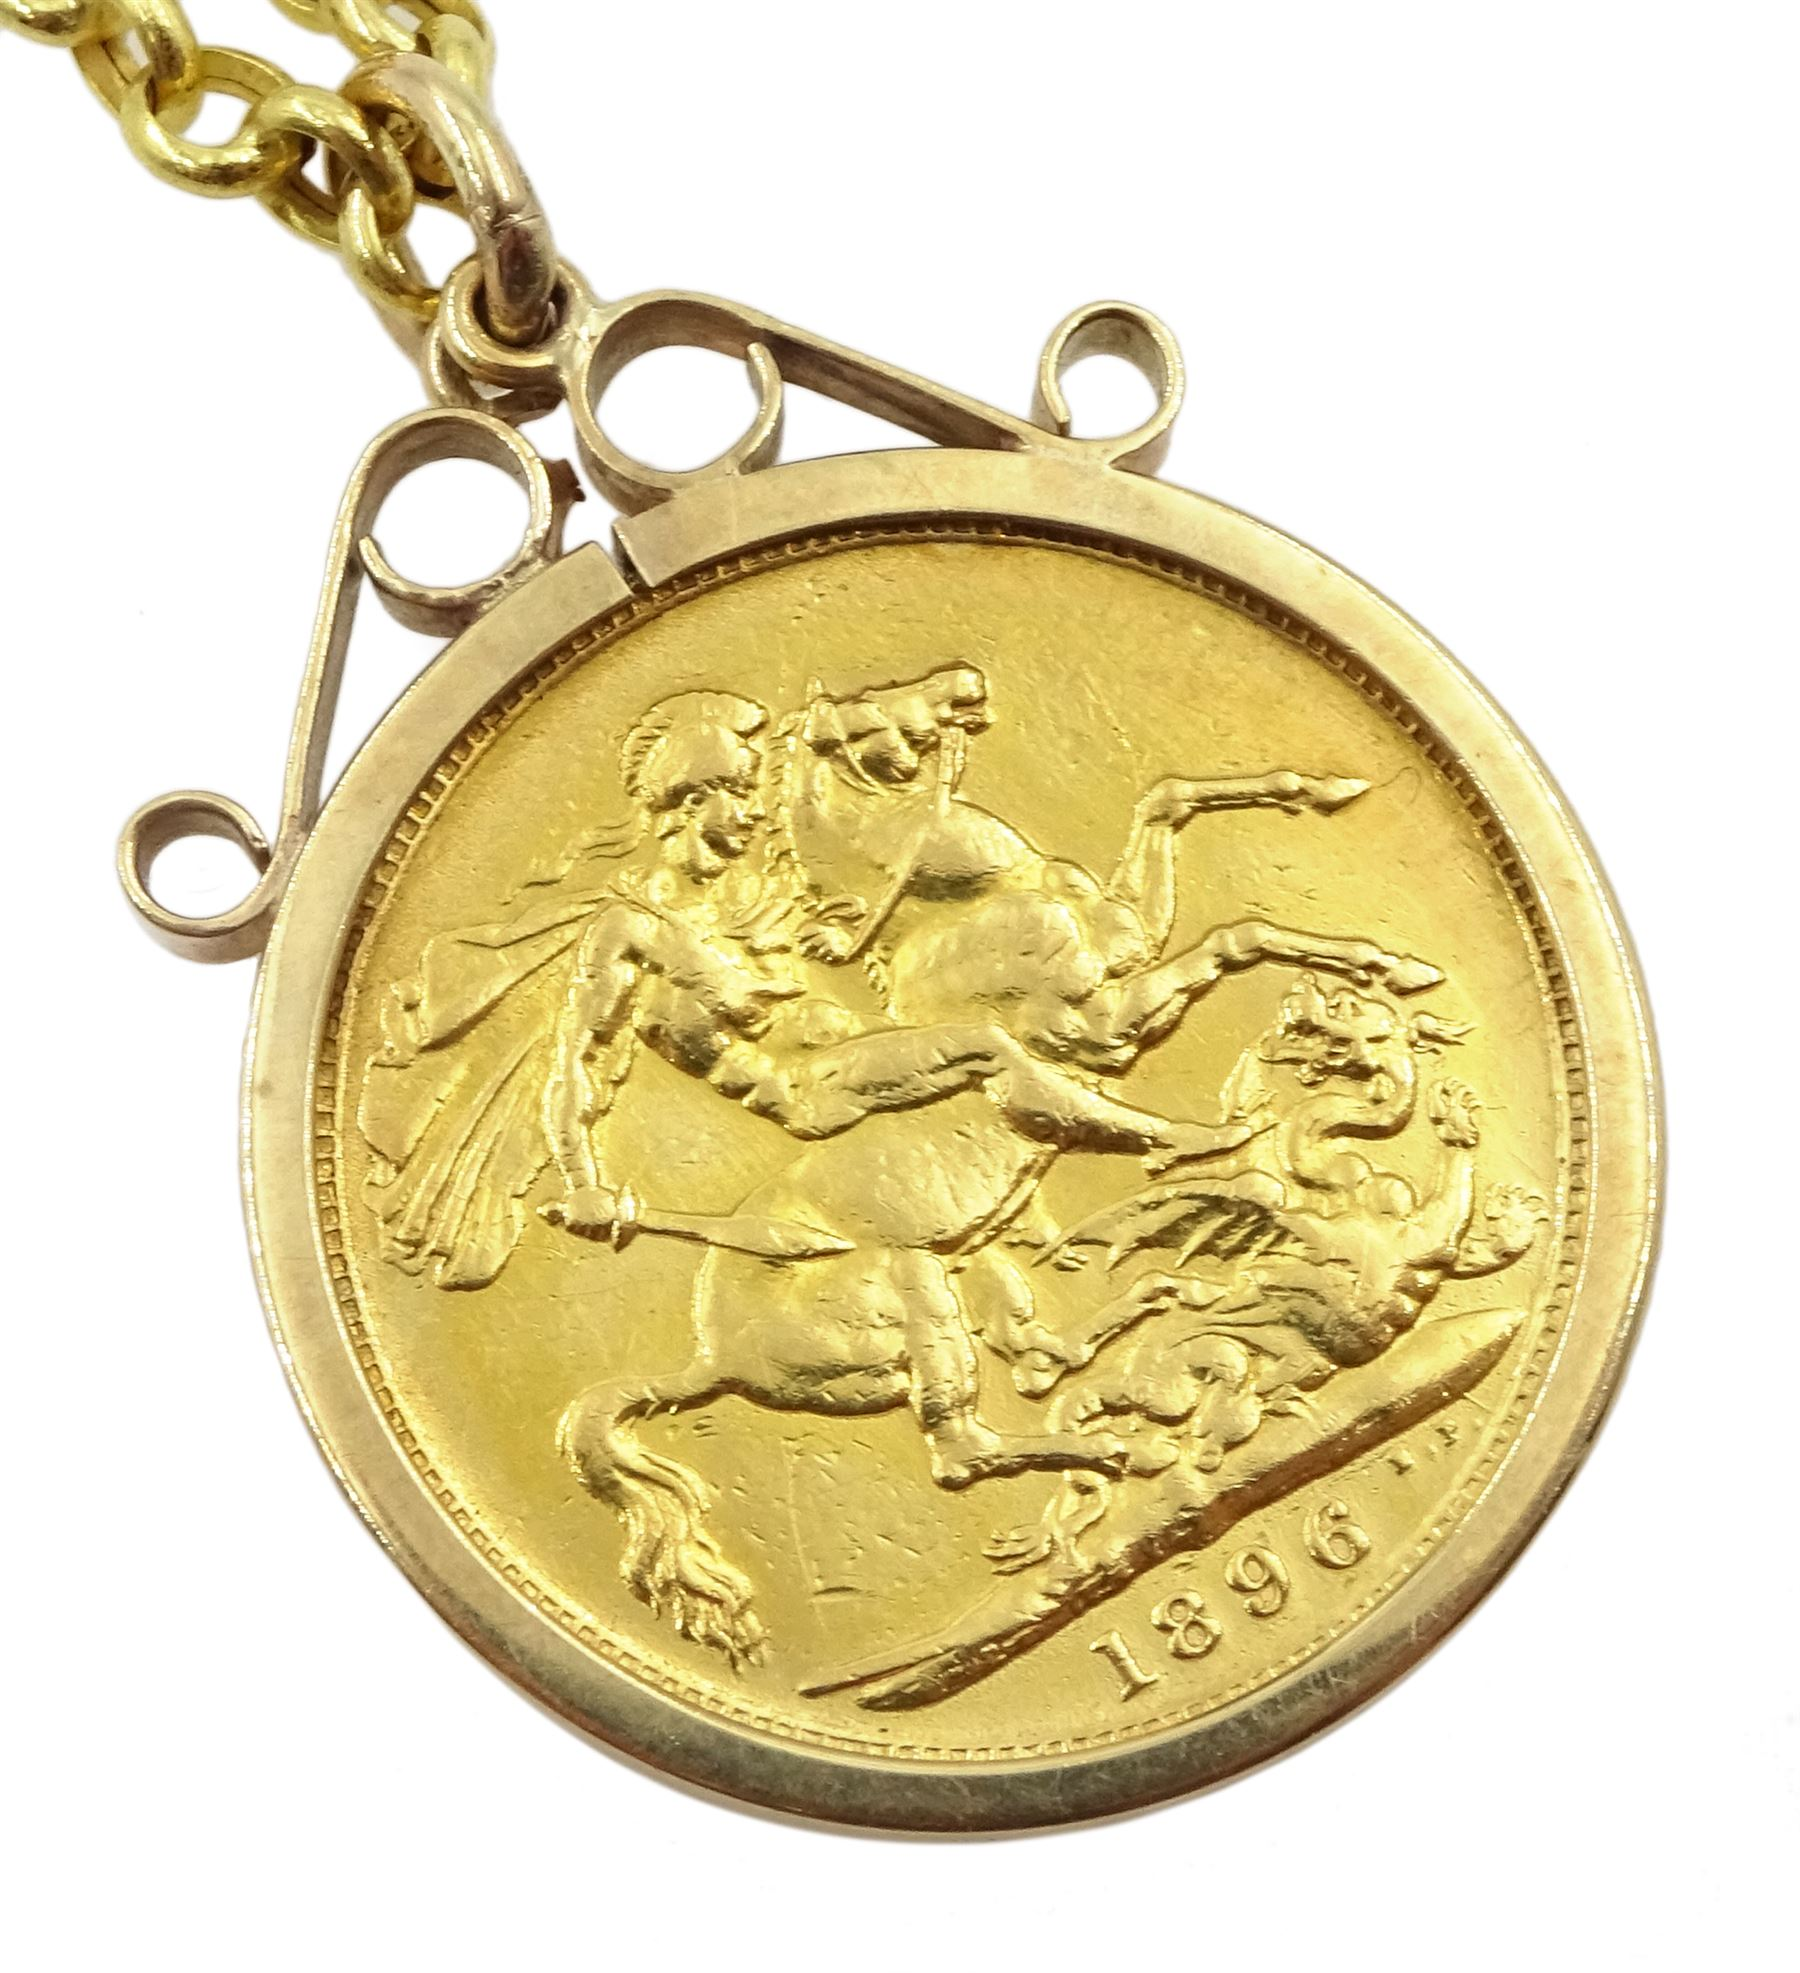 Queen Victoria 1896 gold full sovereign coin - Image 2 of 4